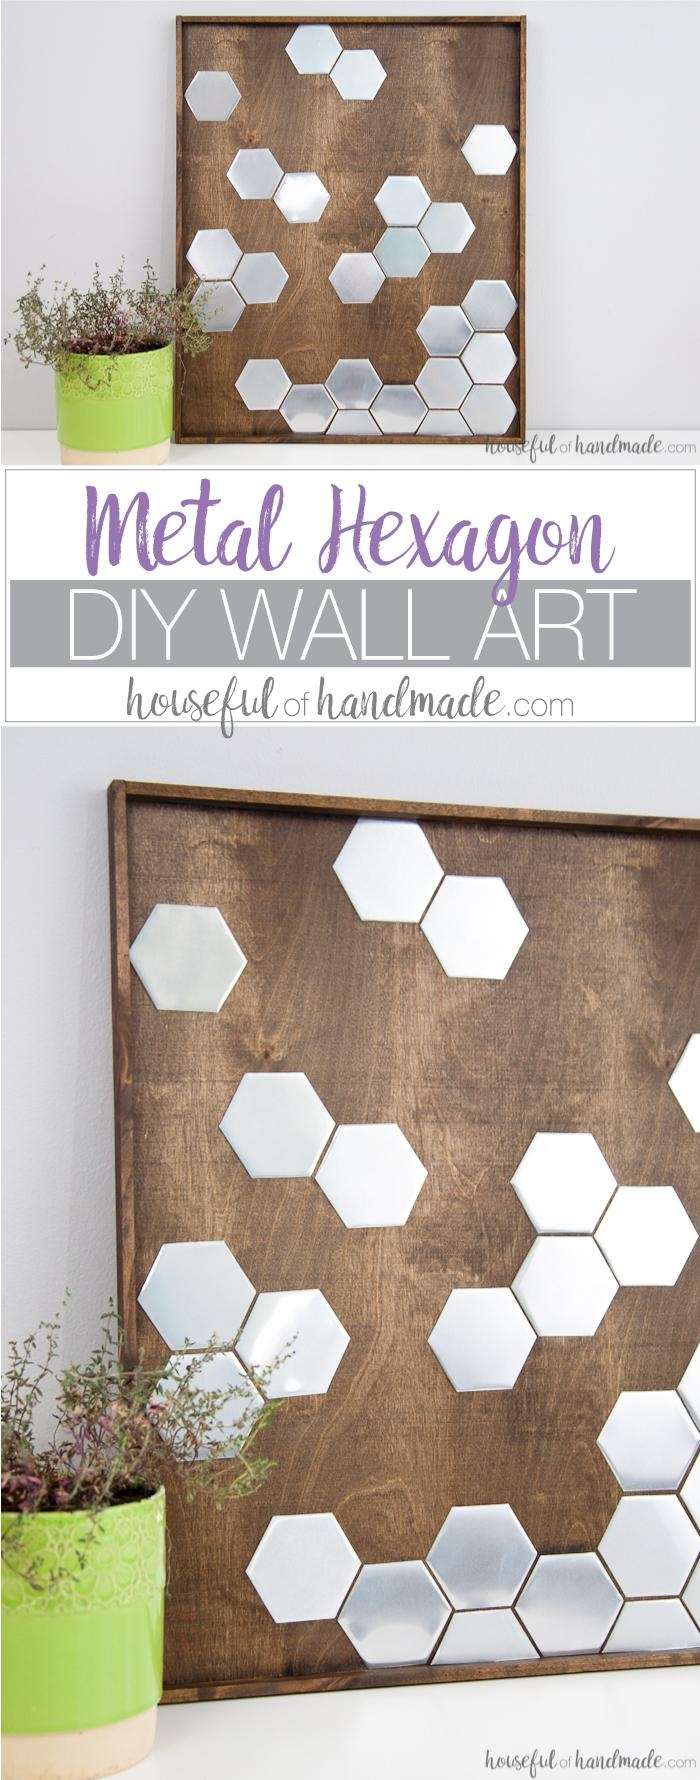 Diy Metal Hexagon Wall Art – A Houseful Of Handmade Inside Diy Metal Wall Art (View 11 of 20)